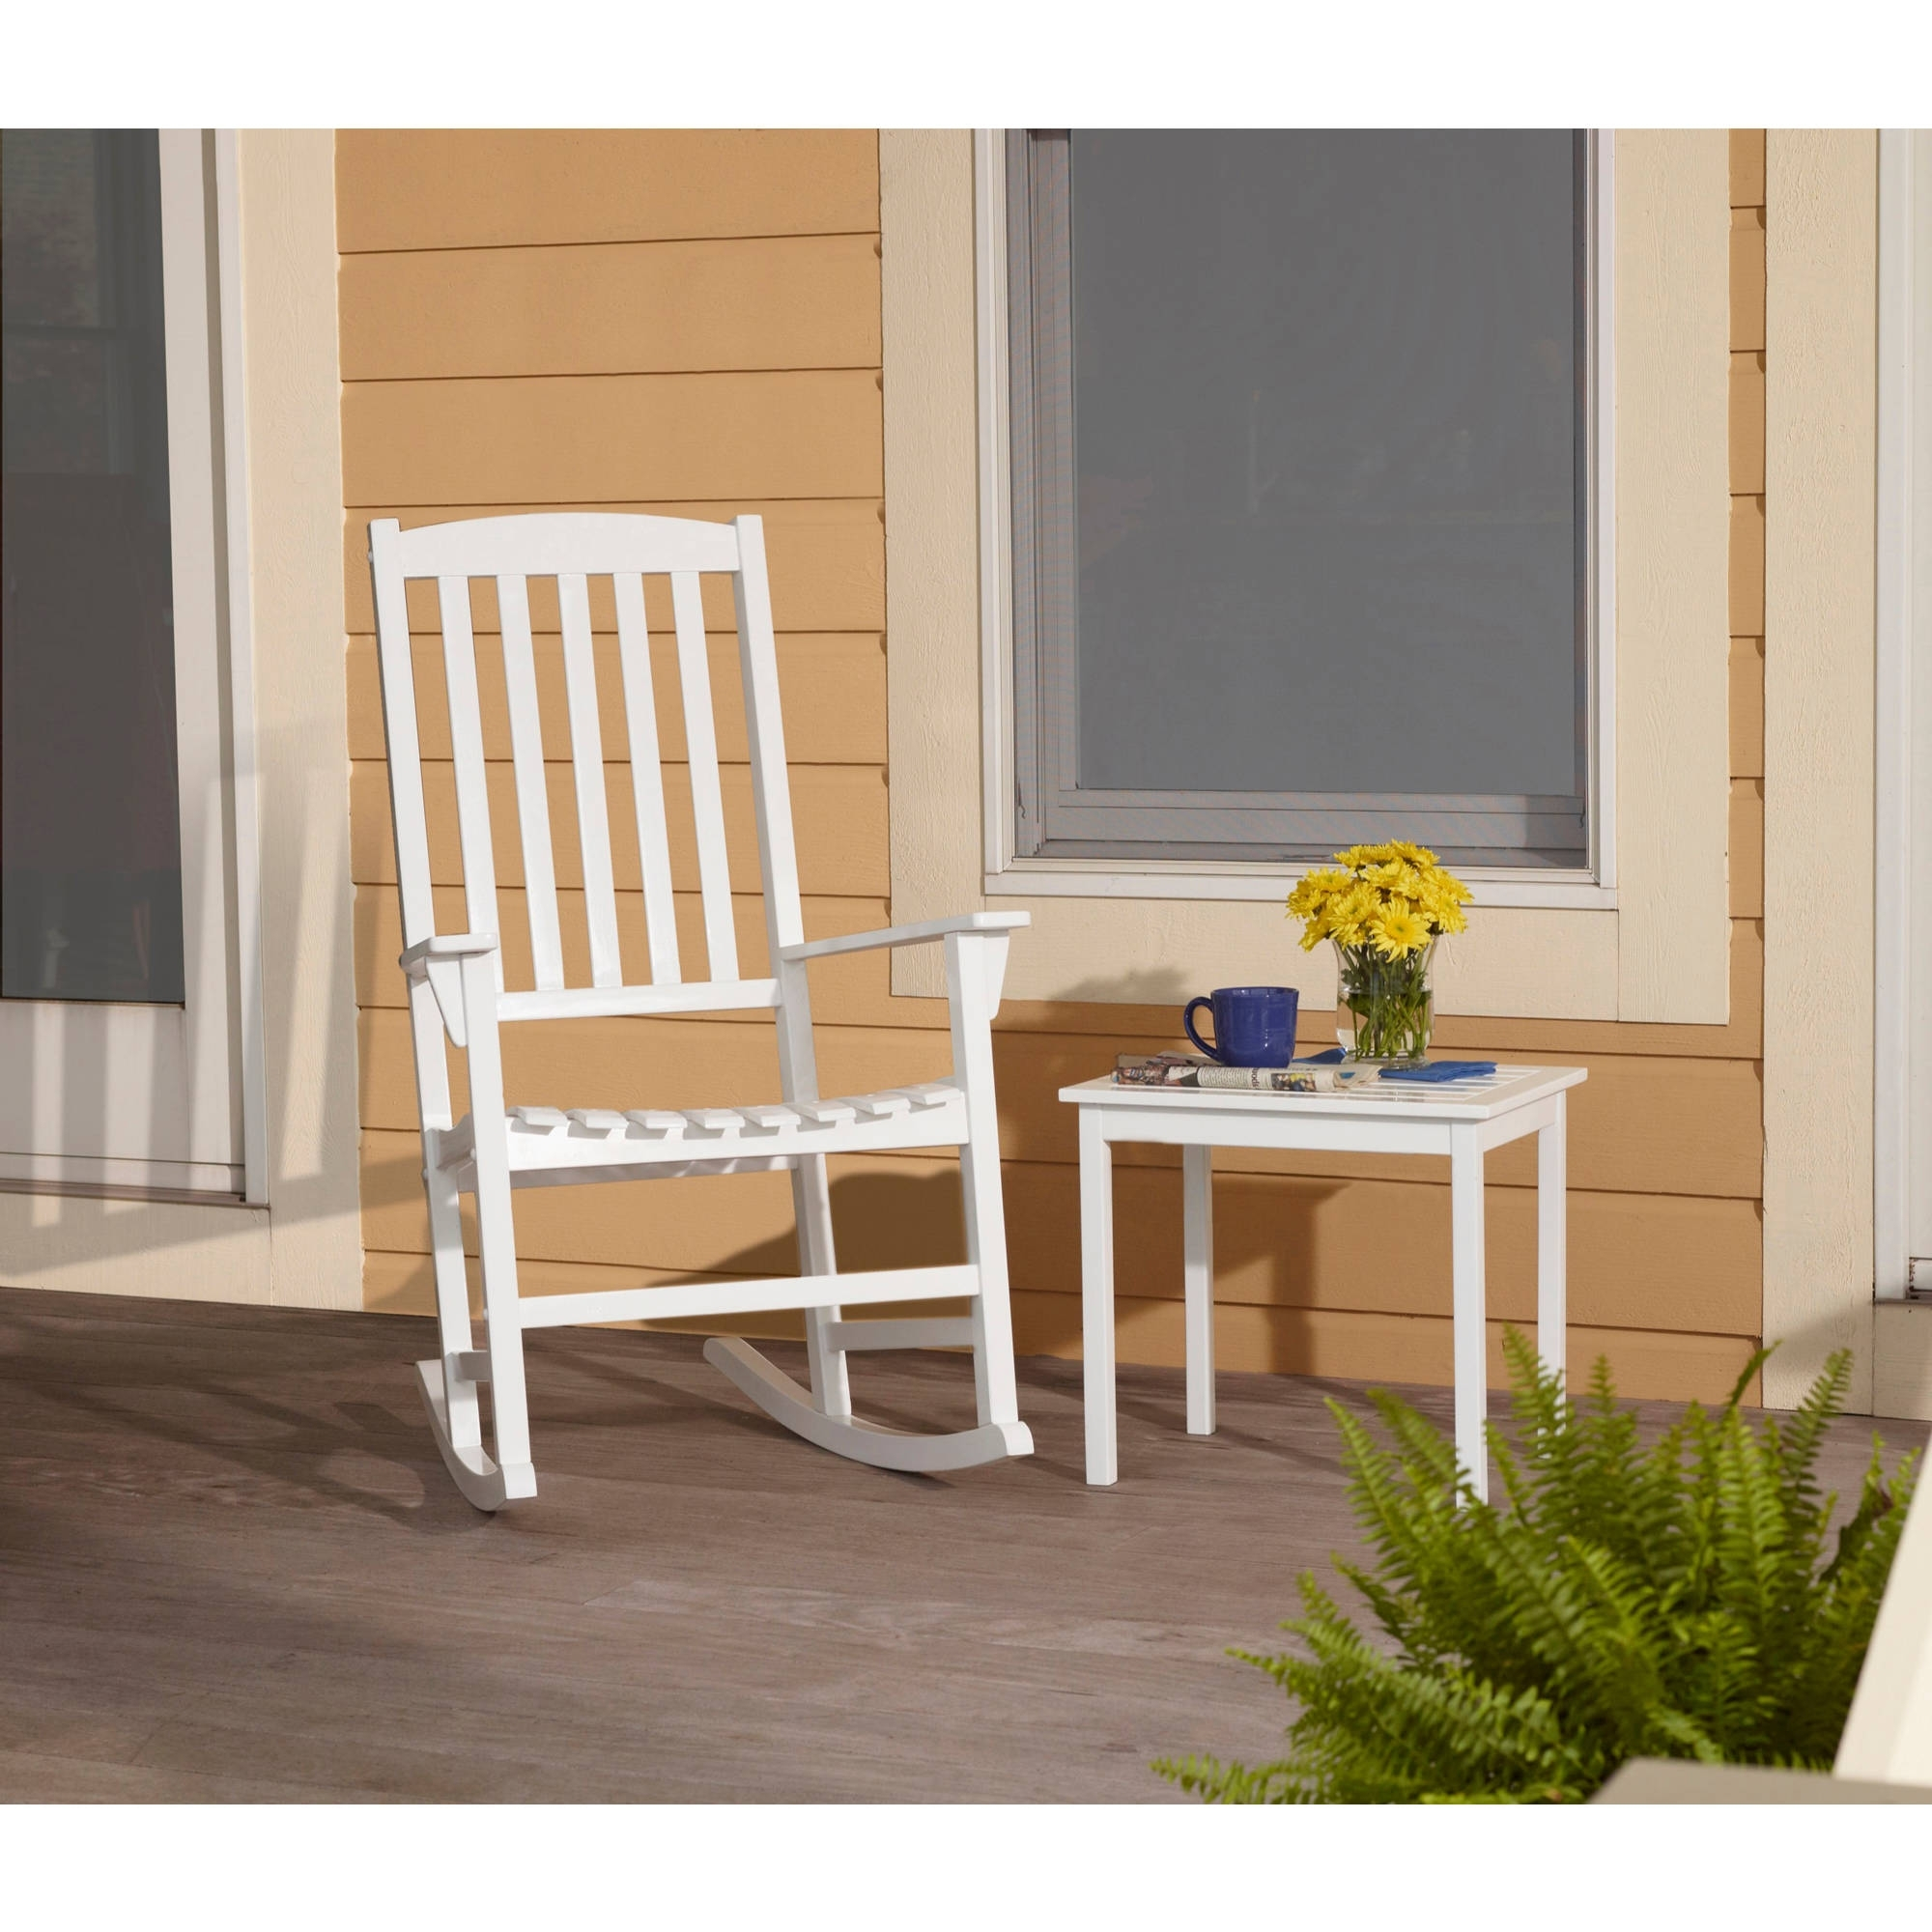 Mainstays Outdoor Rocking Chair, White – Walmart With Regard To Well Liked Rocking Chairs At Walmart (View 8 of 15)